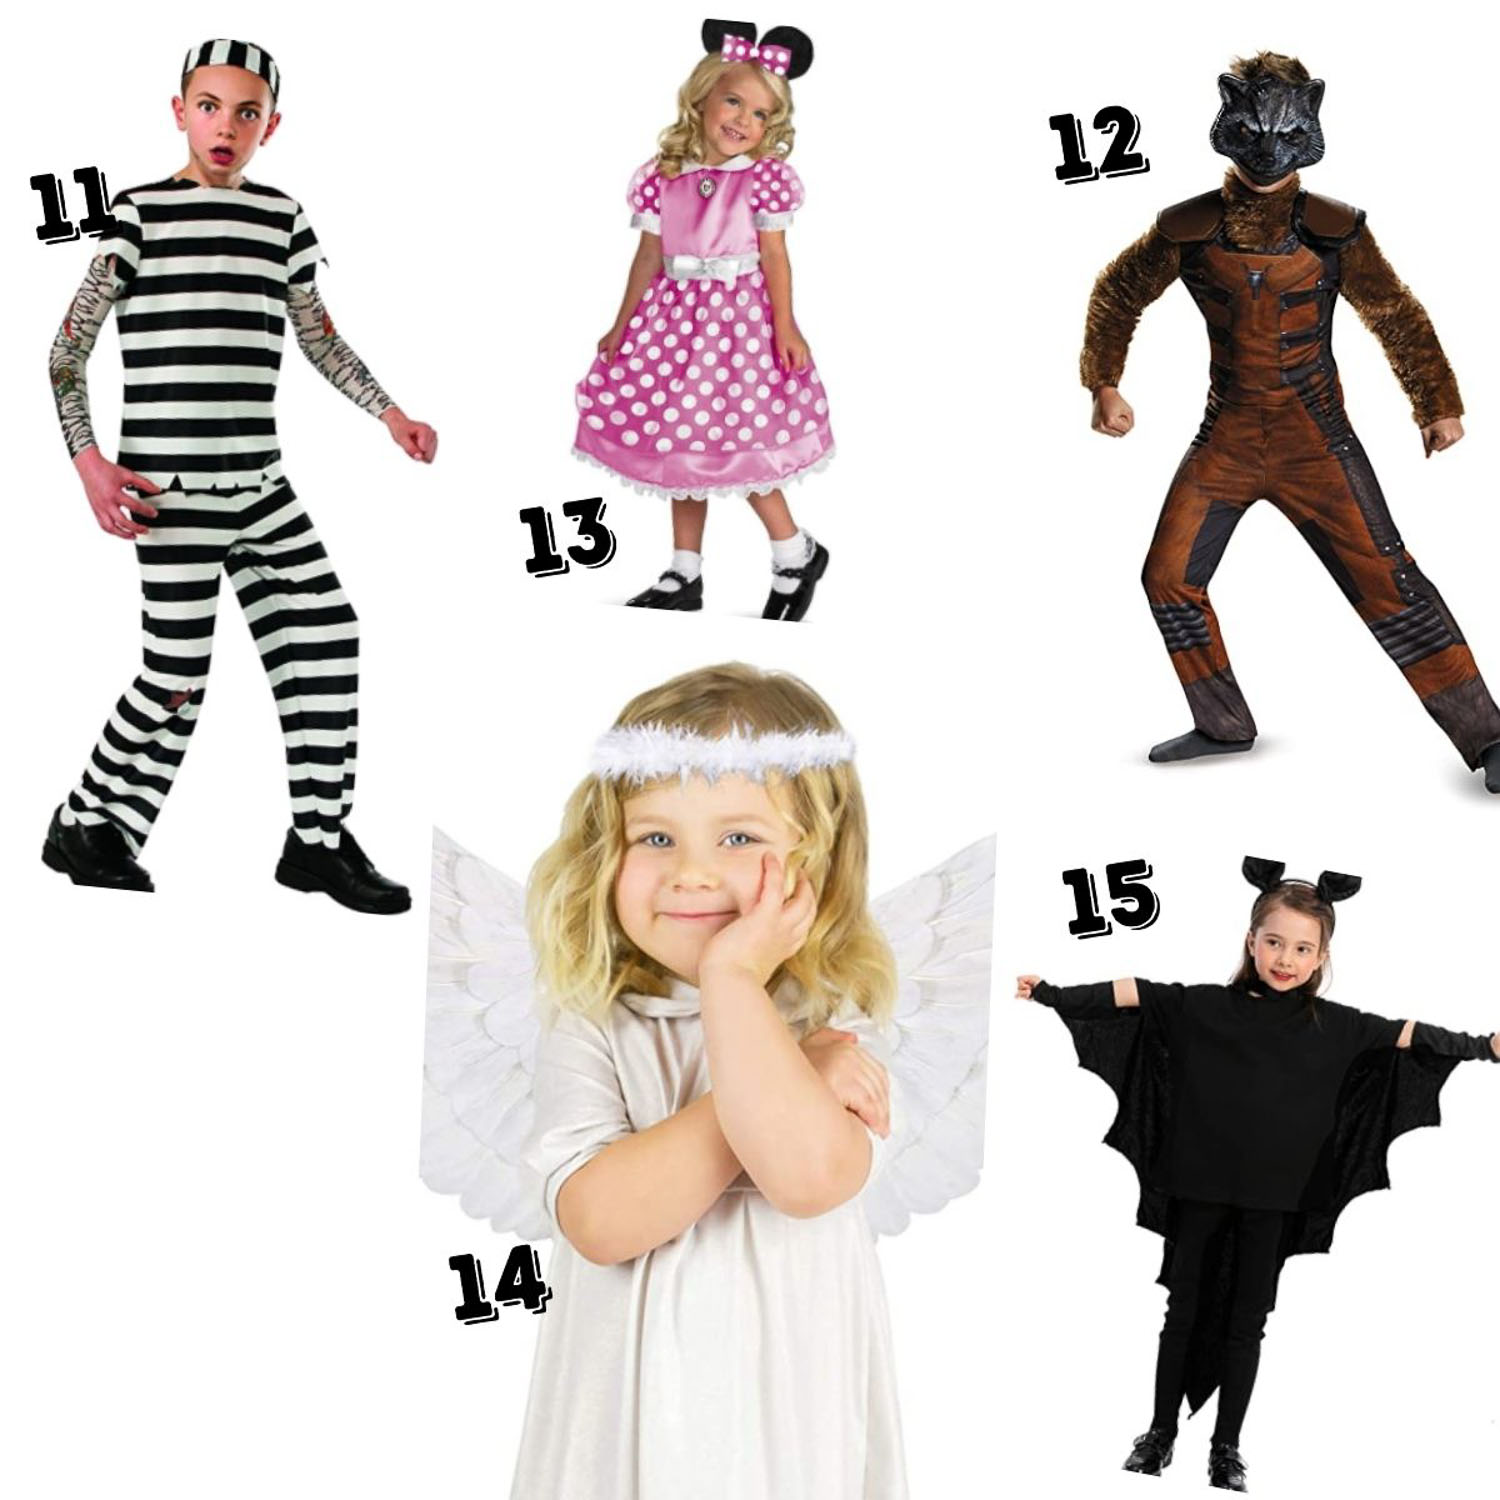 5 kid's cheap kids halloween costumes - prisoner, Minnie mouse, Marvel Raccoon, Angel and Vampire Bat.